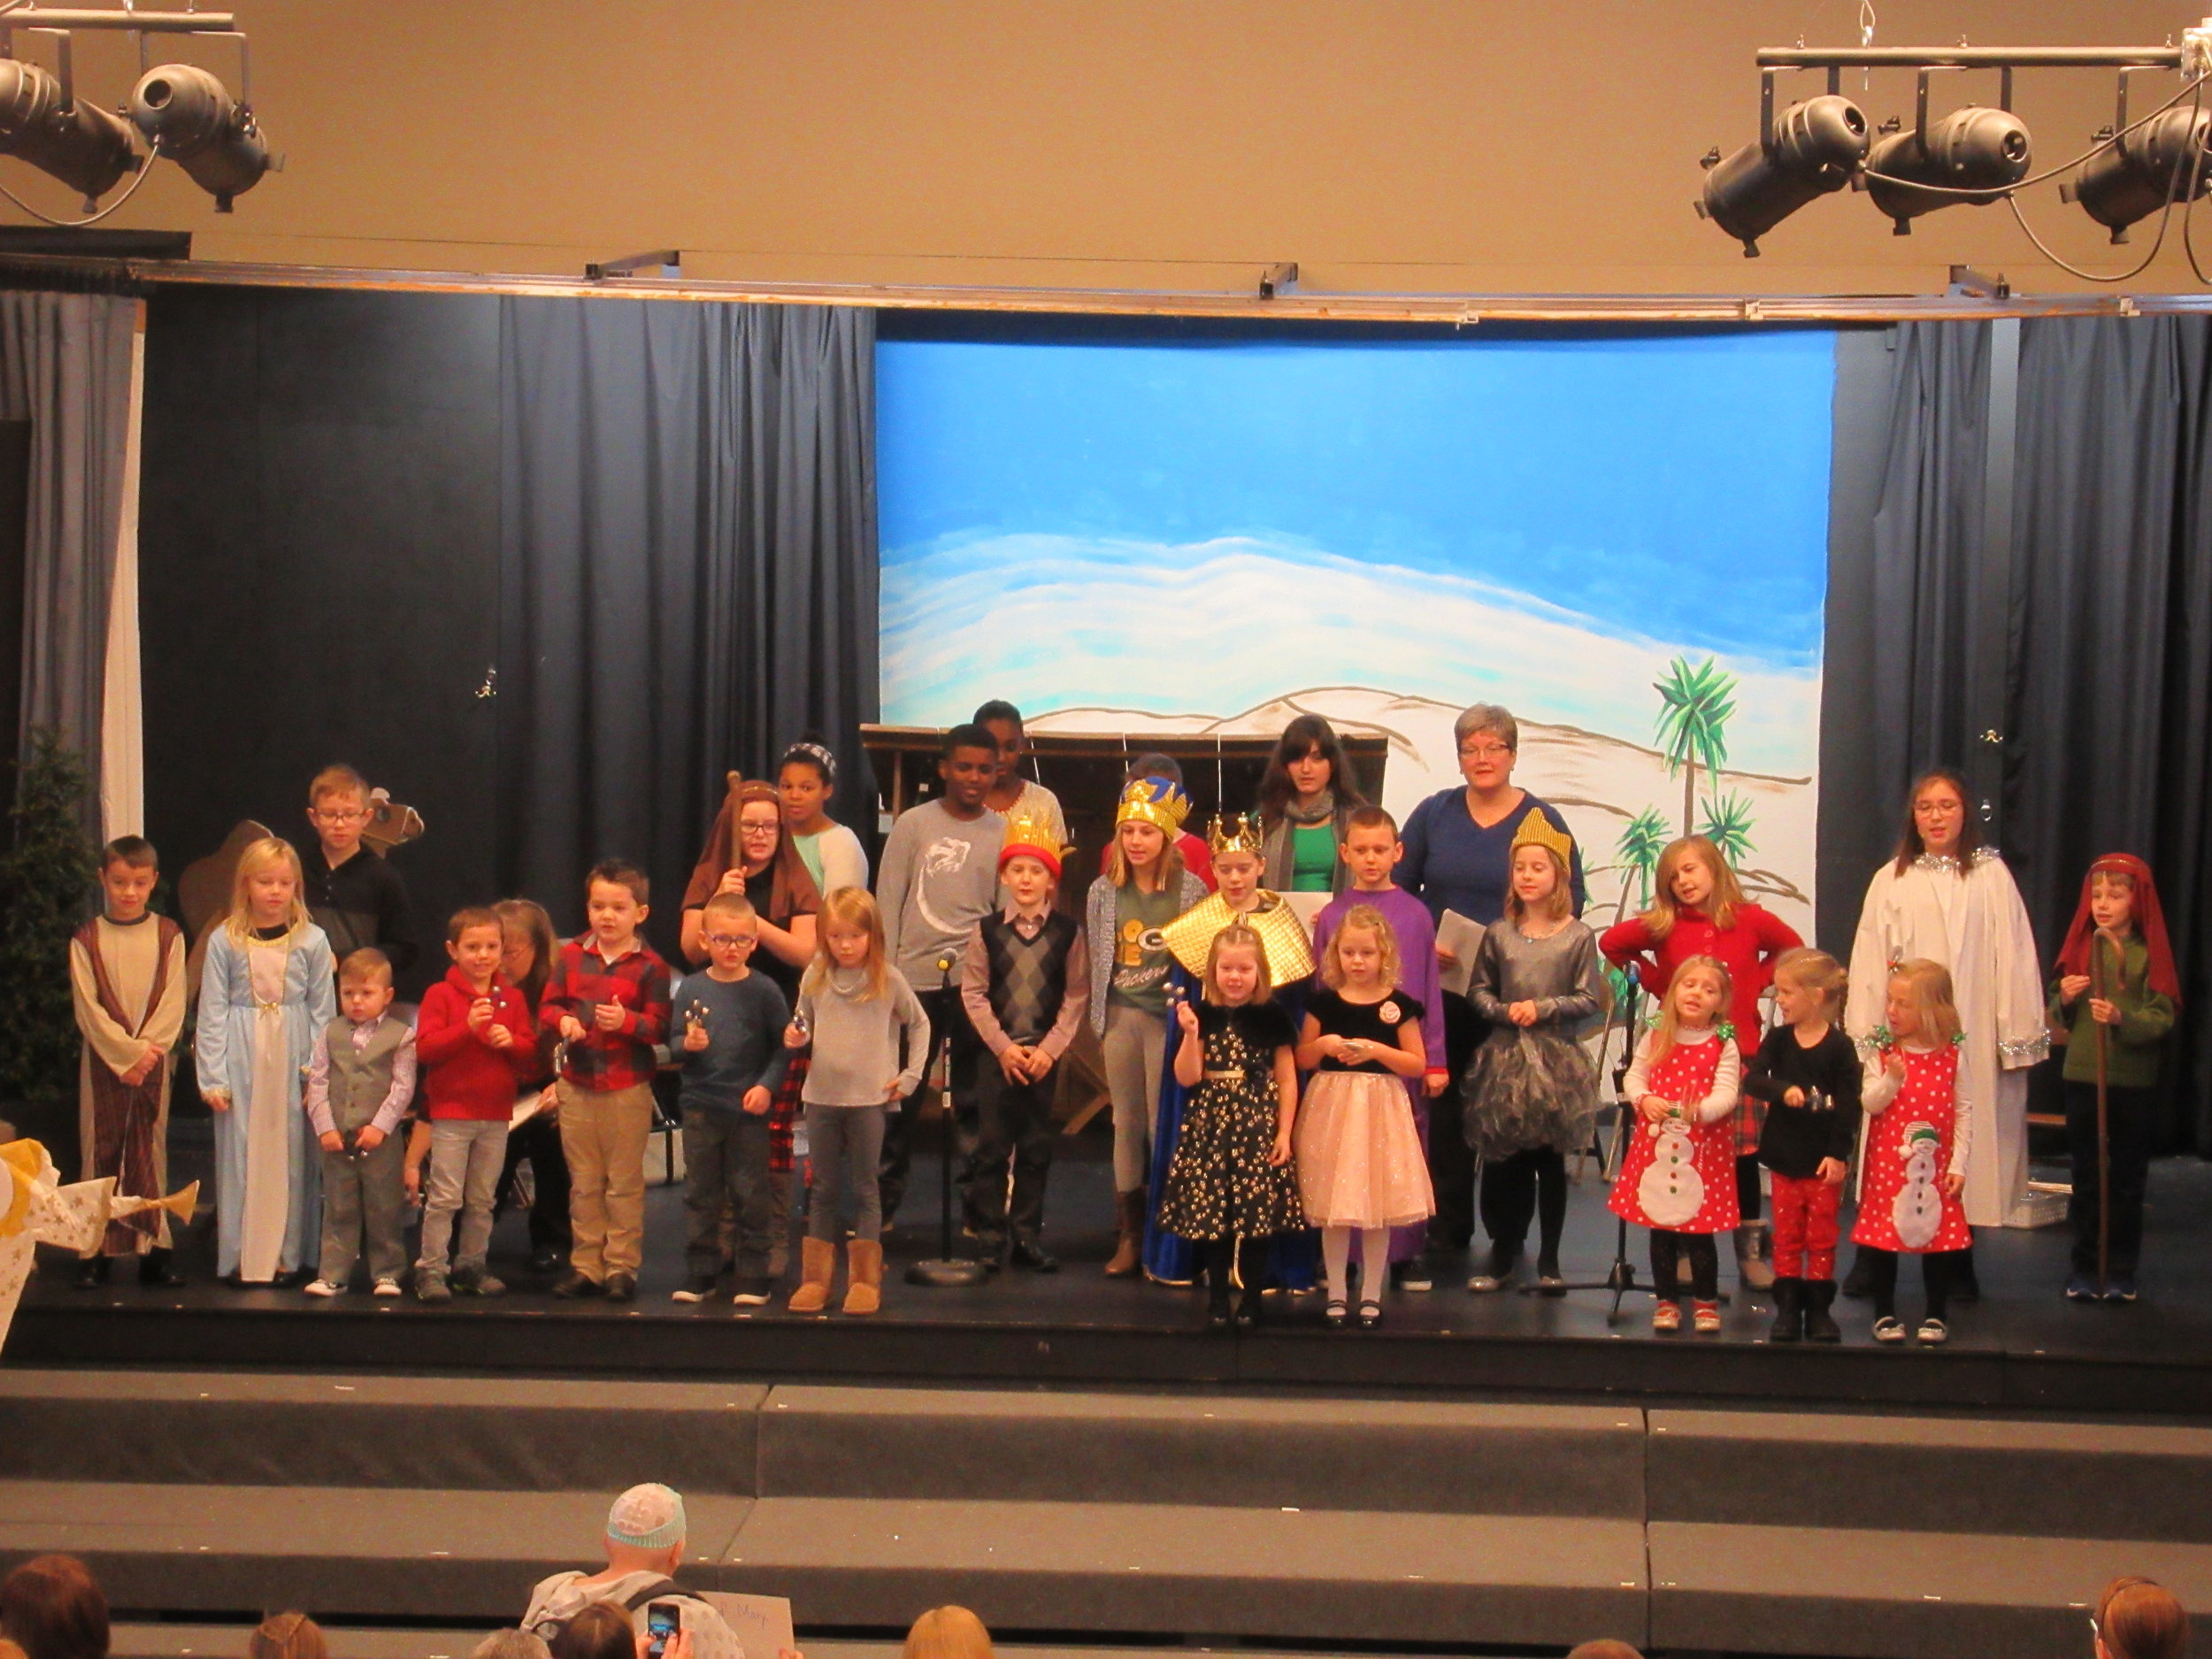 Children_s Christmas Program 1.JPG